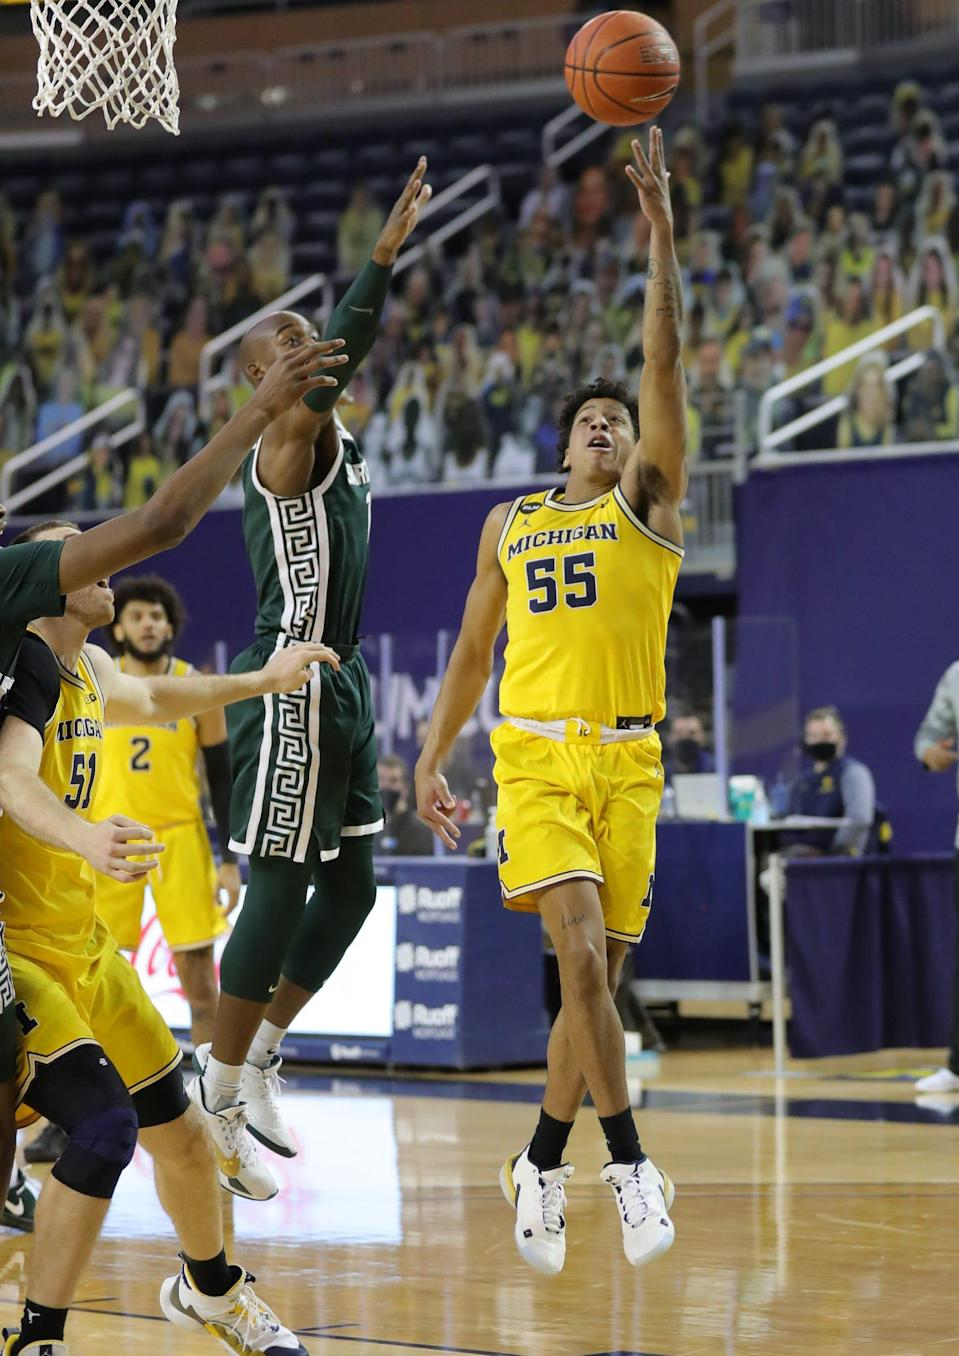 Michigan Wolverines guard Eli Brooks scores against Michigan State Spartans guard Joshua Langford on Thursday, March 4, 2021 at Crisler Center in Ann Arbor.